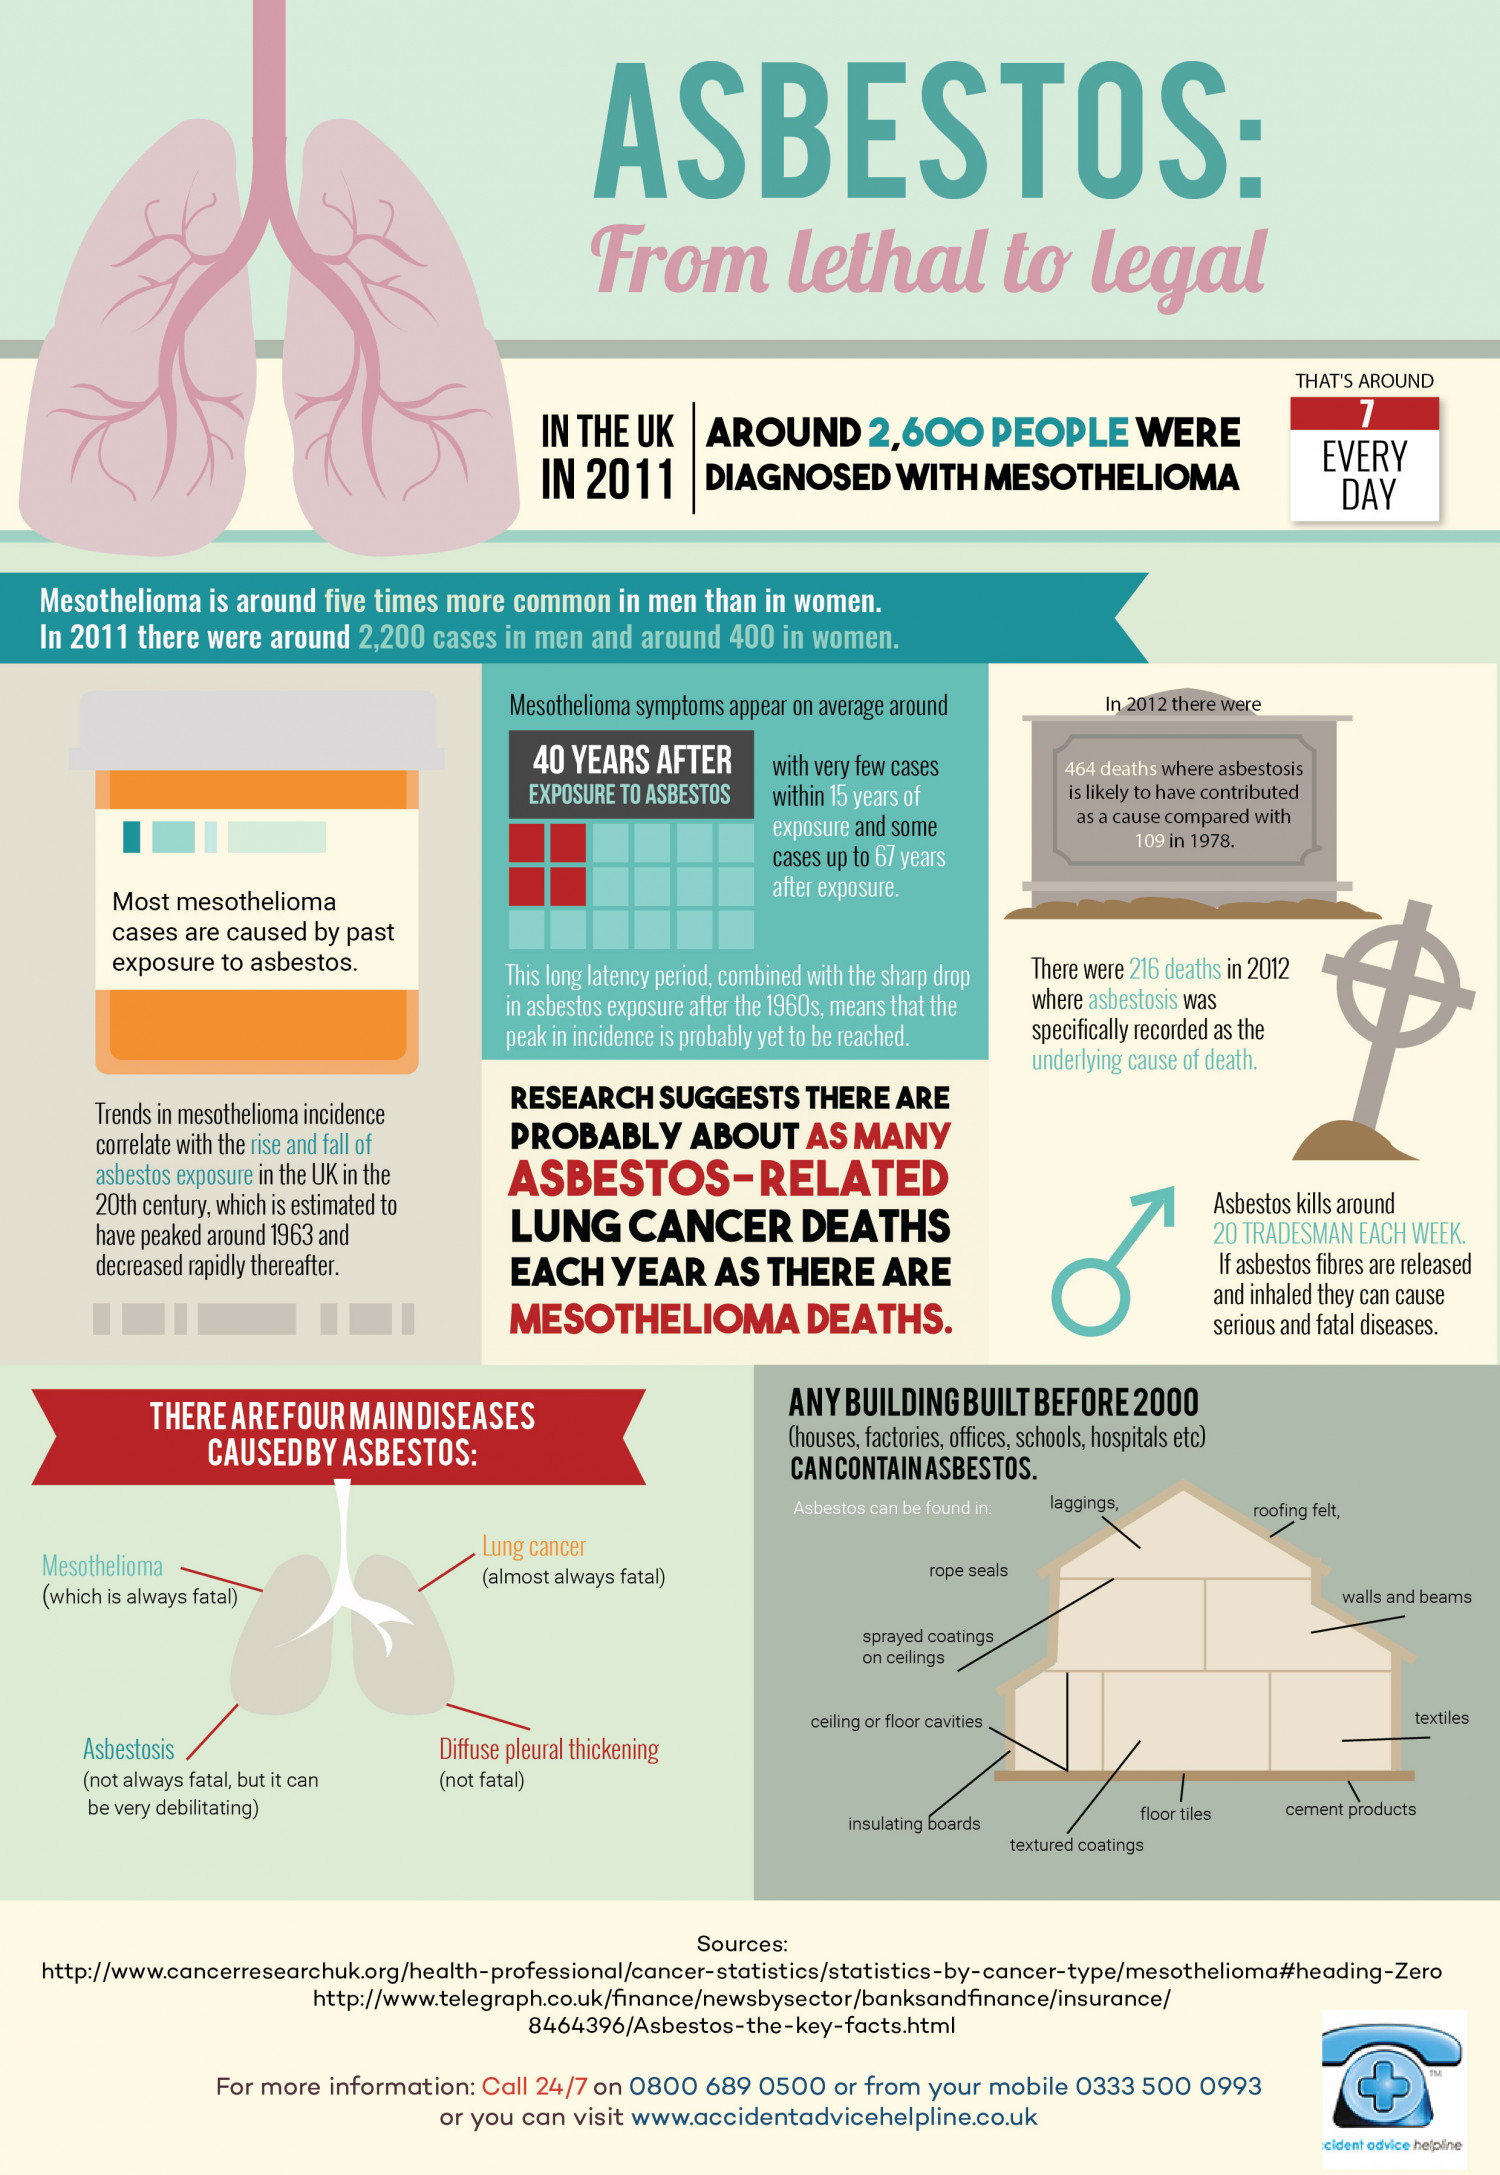 Asbestos: From Lethal to Legal Infographic